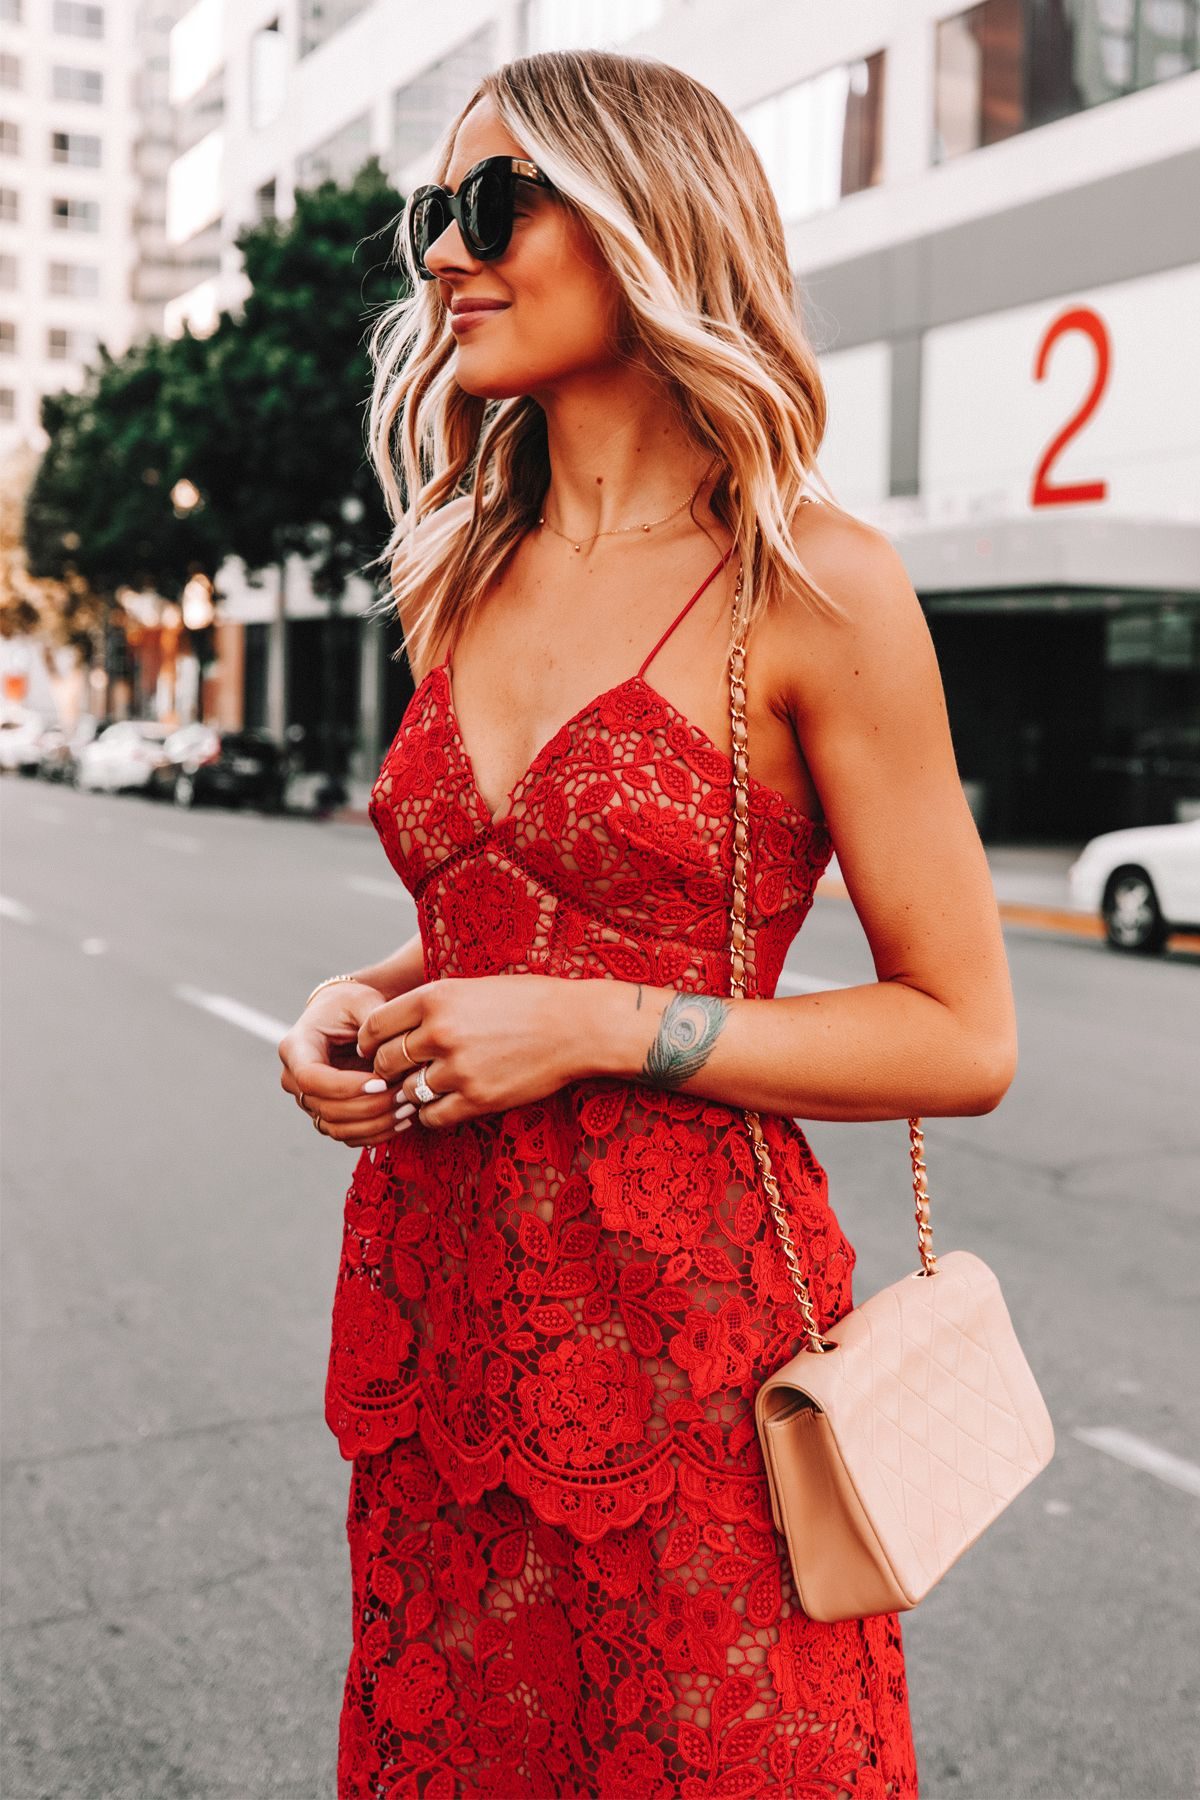 Spring Wedding Guest Dresses Dress For The Wedding Wedding Guest Dress Summer Spring Wedding Guest Dress Wedding Attire Guest [ 1024 x 802 Pixel ]